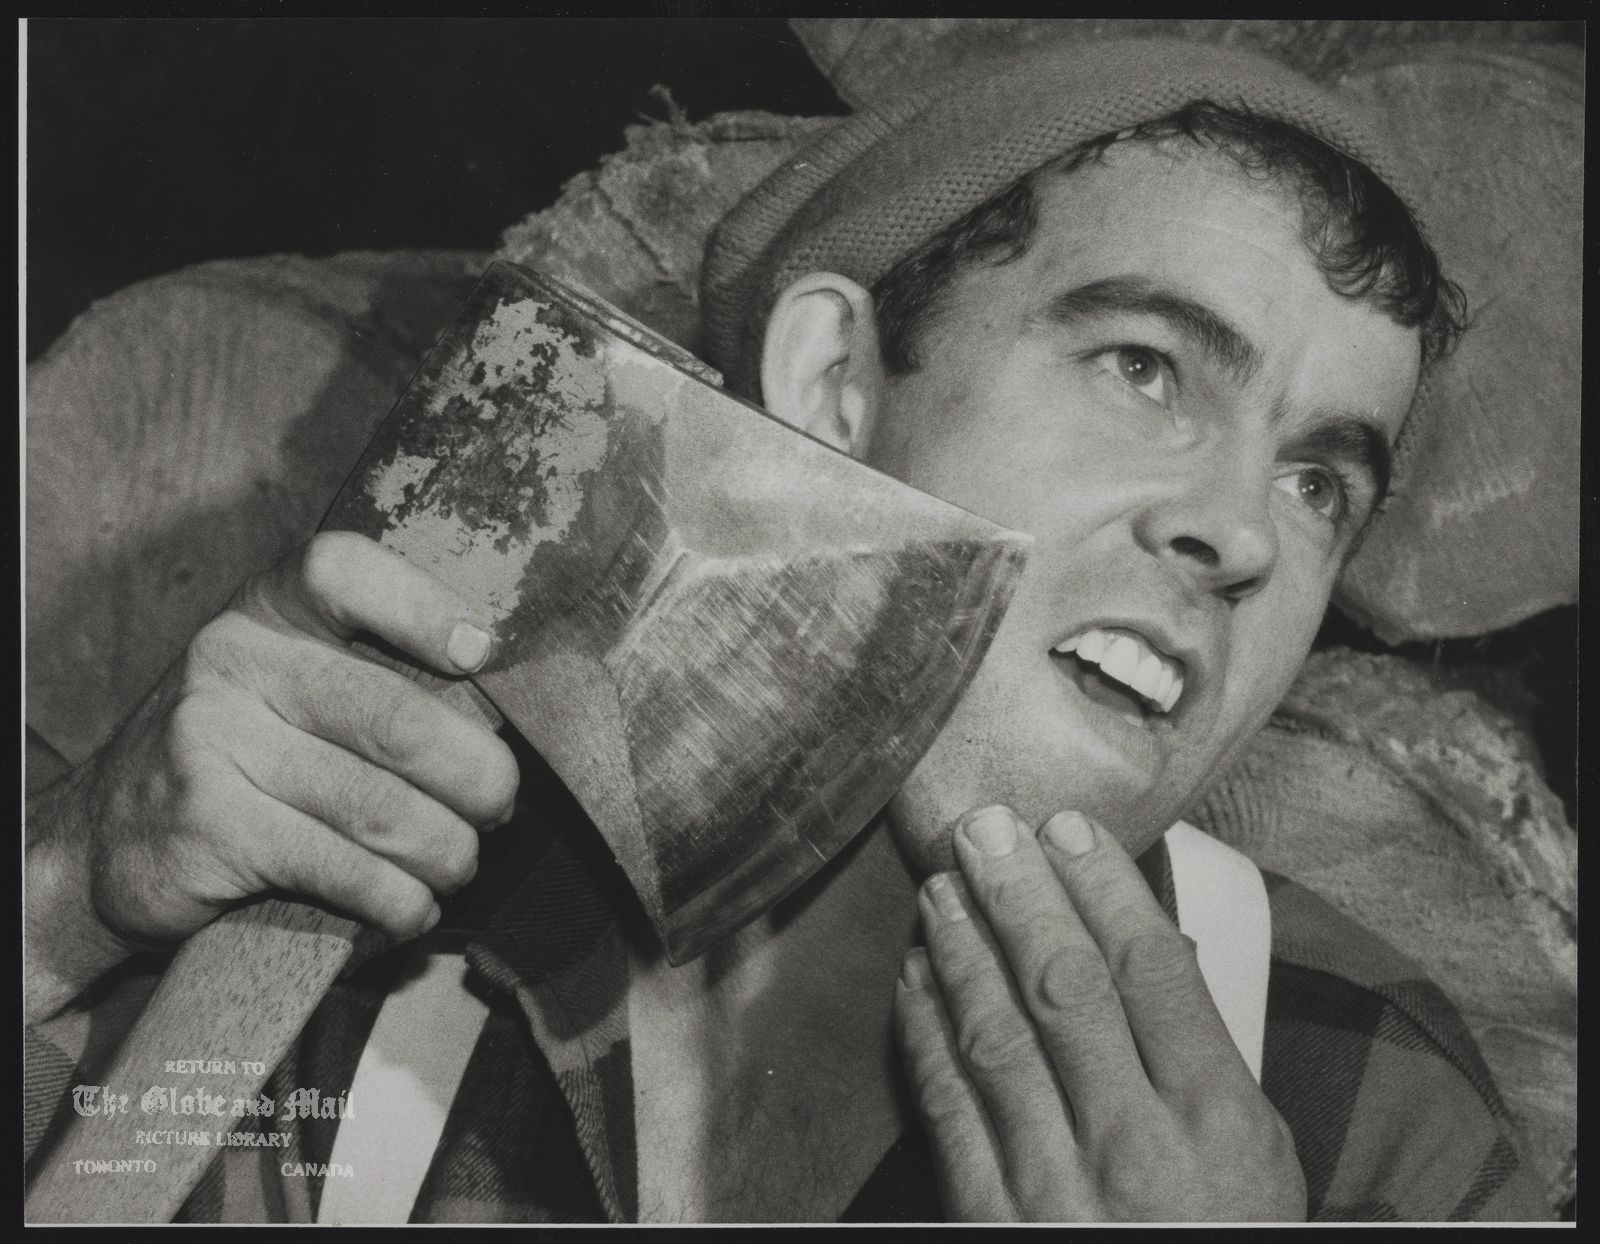 The notes transcribed from the back of this photograph are as follows: CANADIAN NATIONAL (Toronto) Karl Bischoff of Celista, B.C. says his axe is so sharp that he can shave with it. He is in Toronto for the Sportsmen's Show at Exhibition Place. The show ends March 19/89